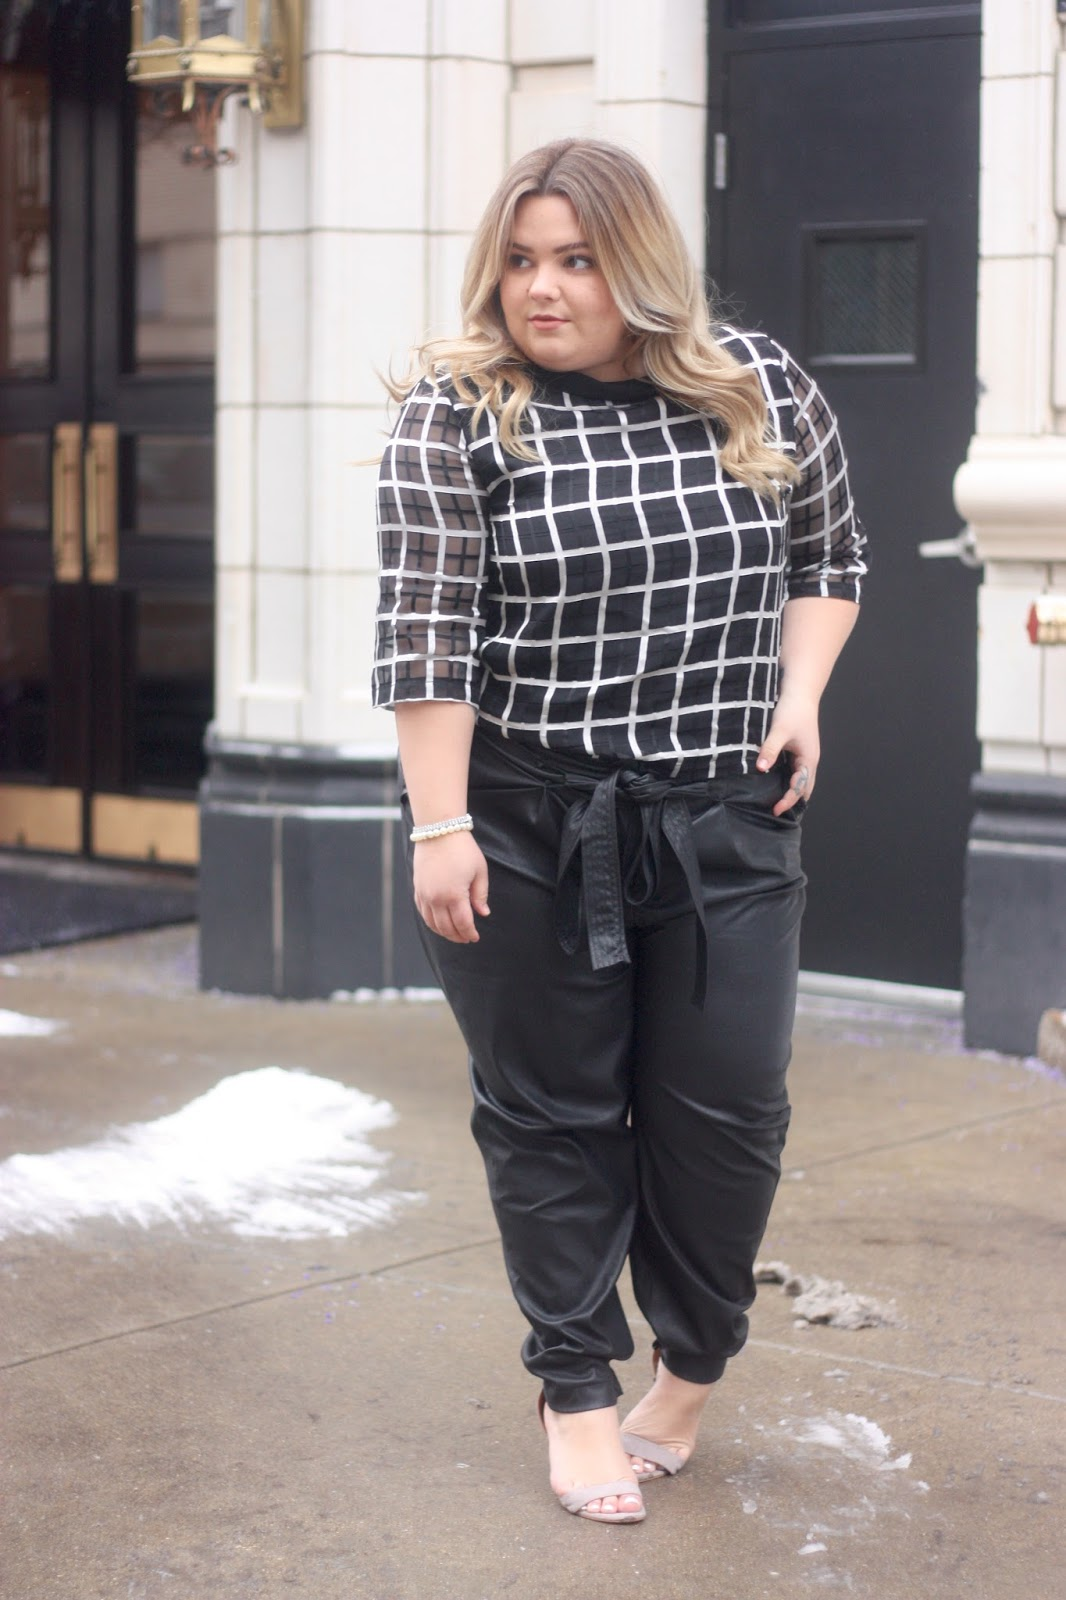 plus size leather trousers, leather joggers, natalie in the city, natalie craig, chicago blogger, midwest blogger, plus size clothing, ELVI, u.k., fatshion